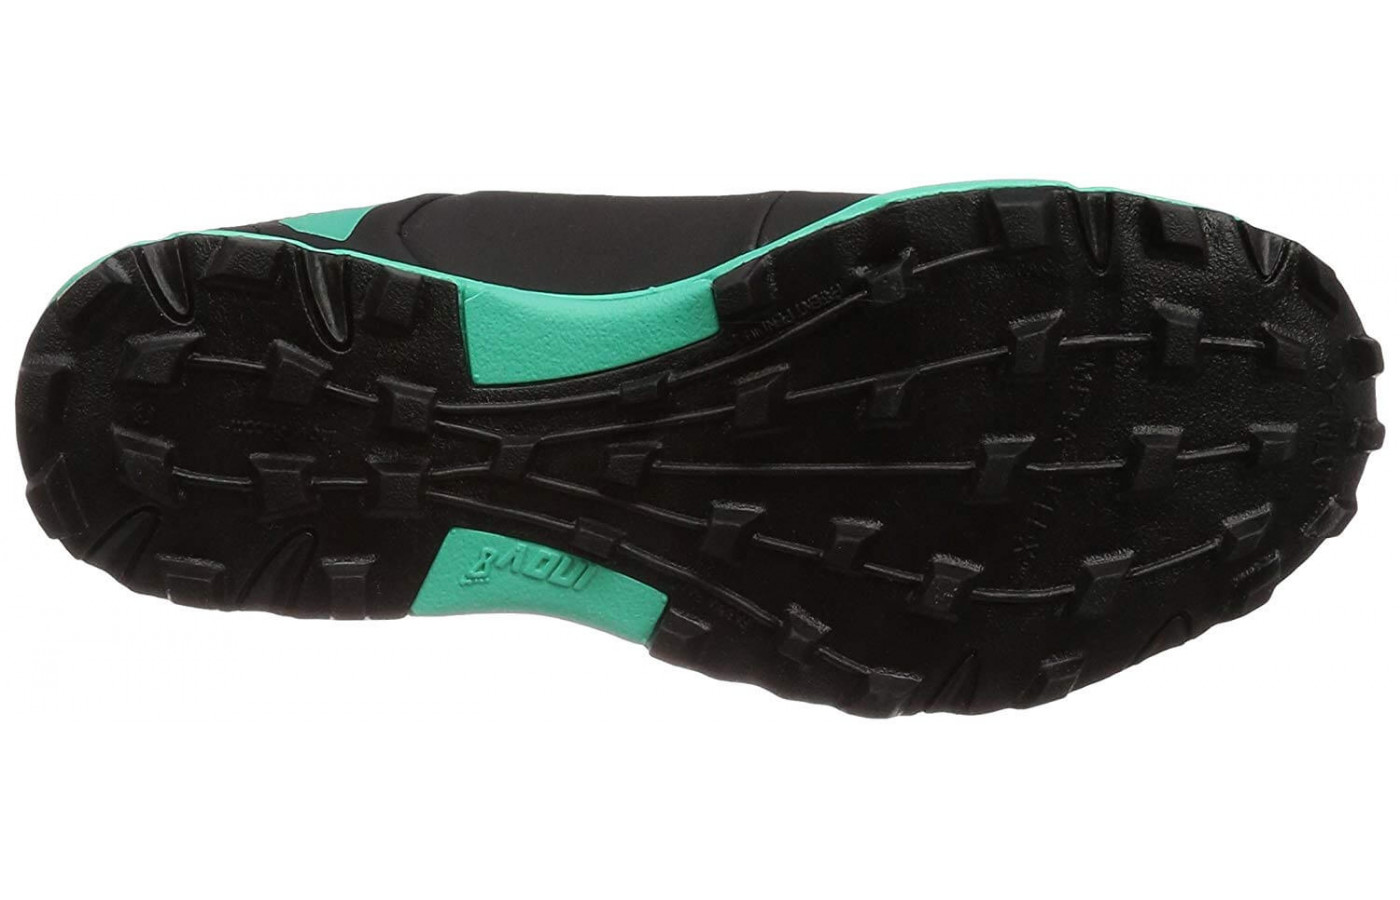 Its outsole's sticky rubber compound gives the X-Talon 230 its incredible traction